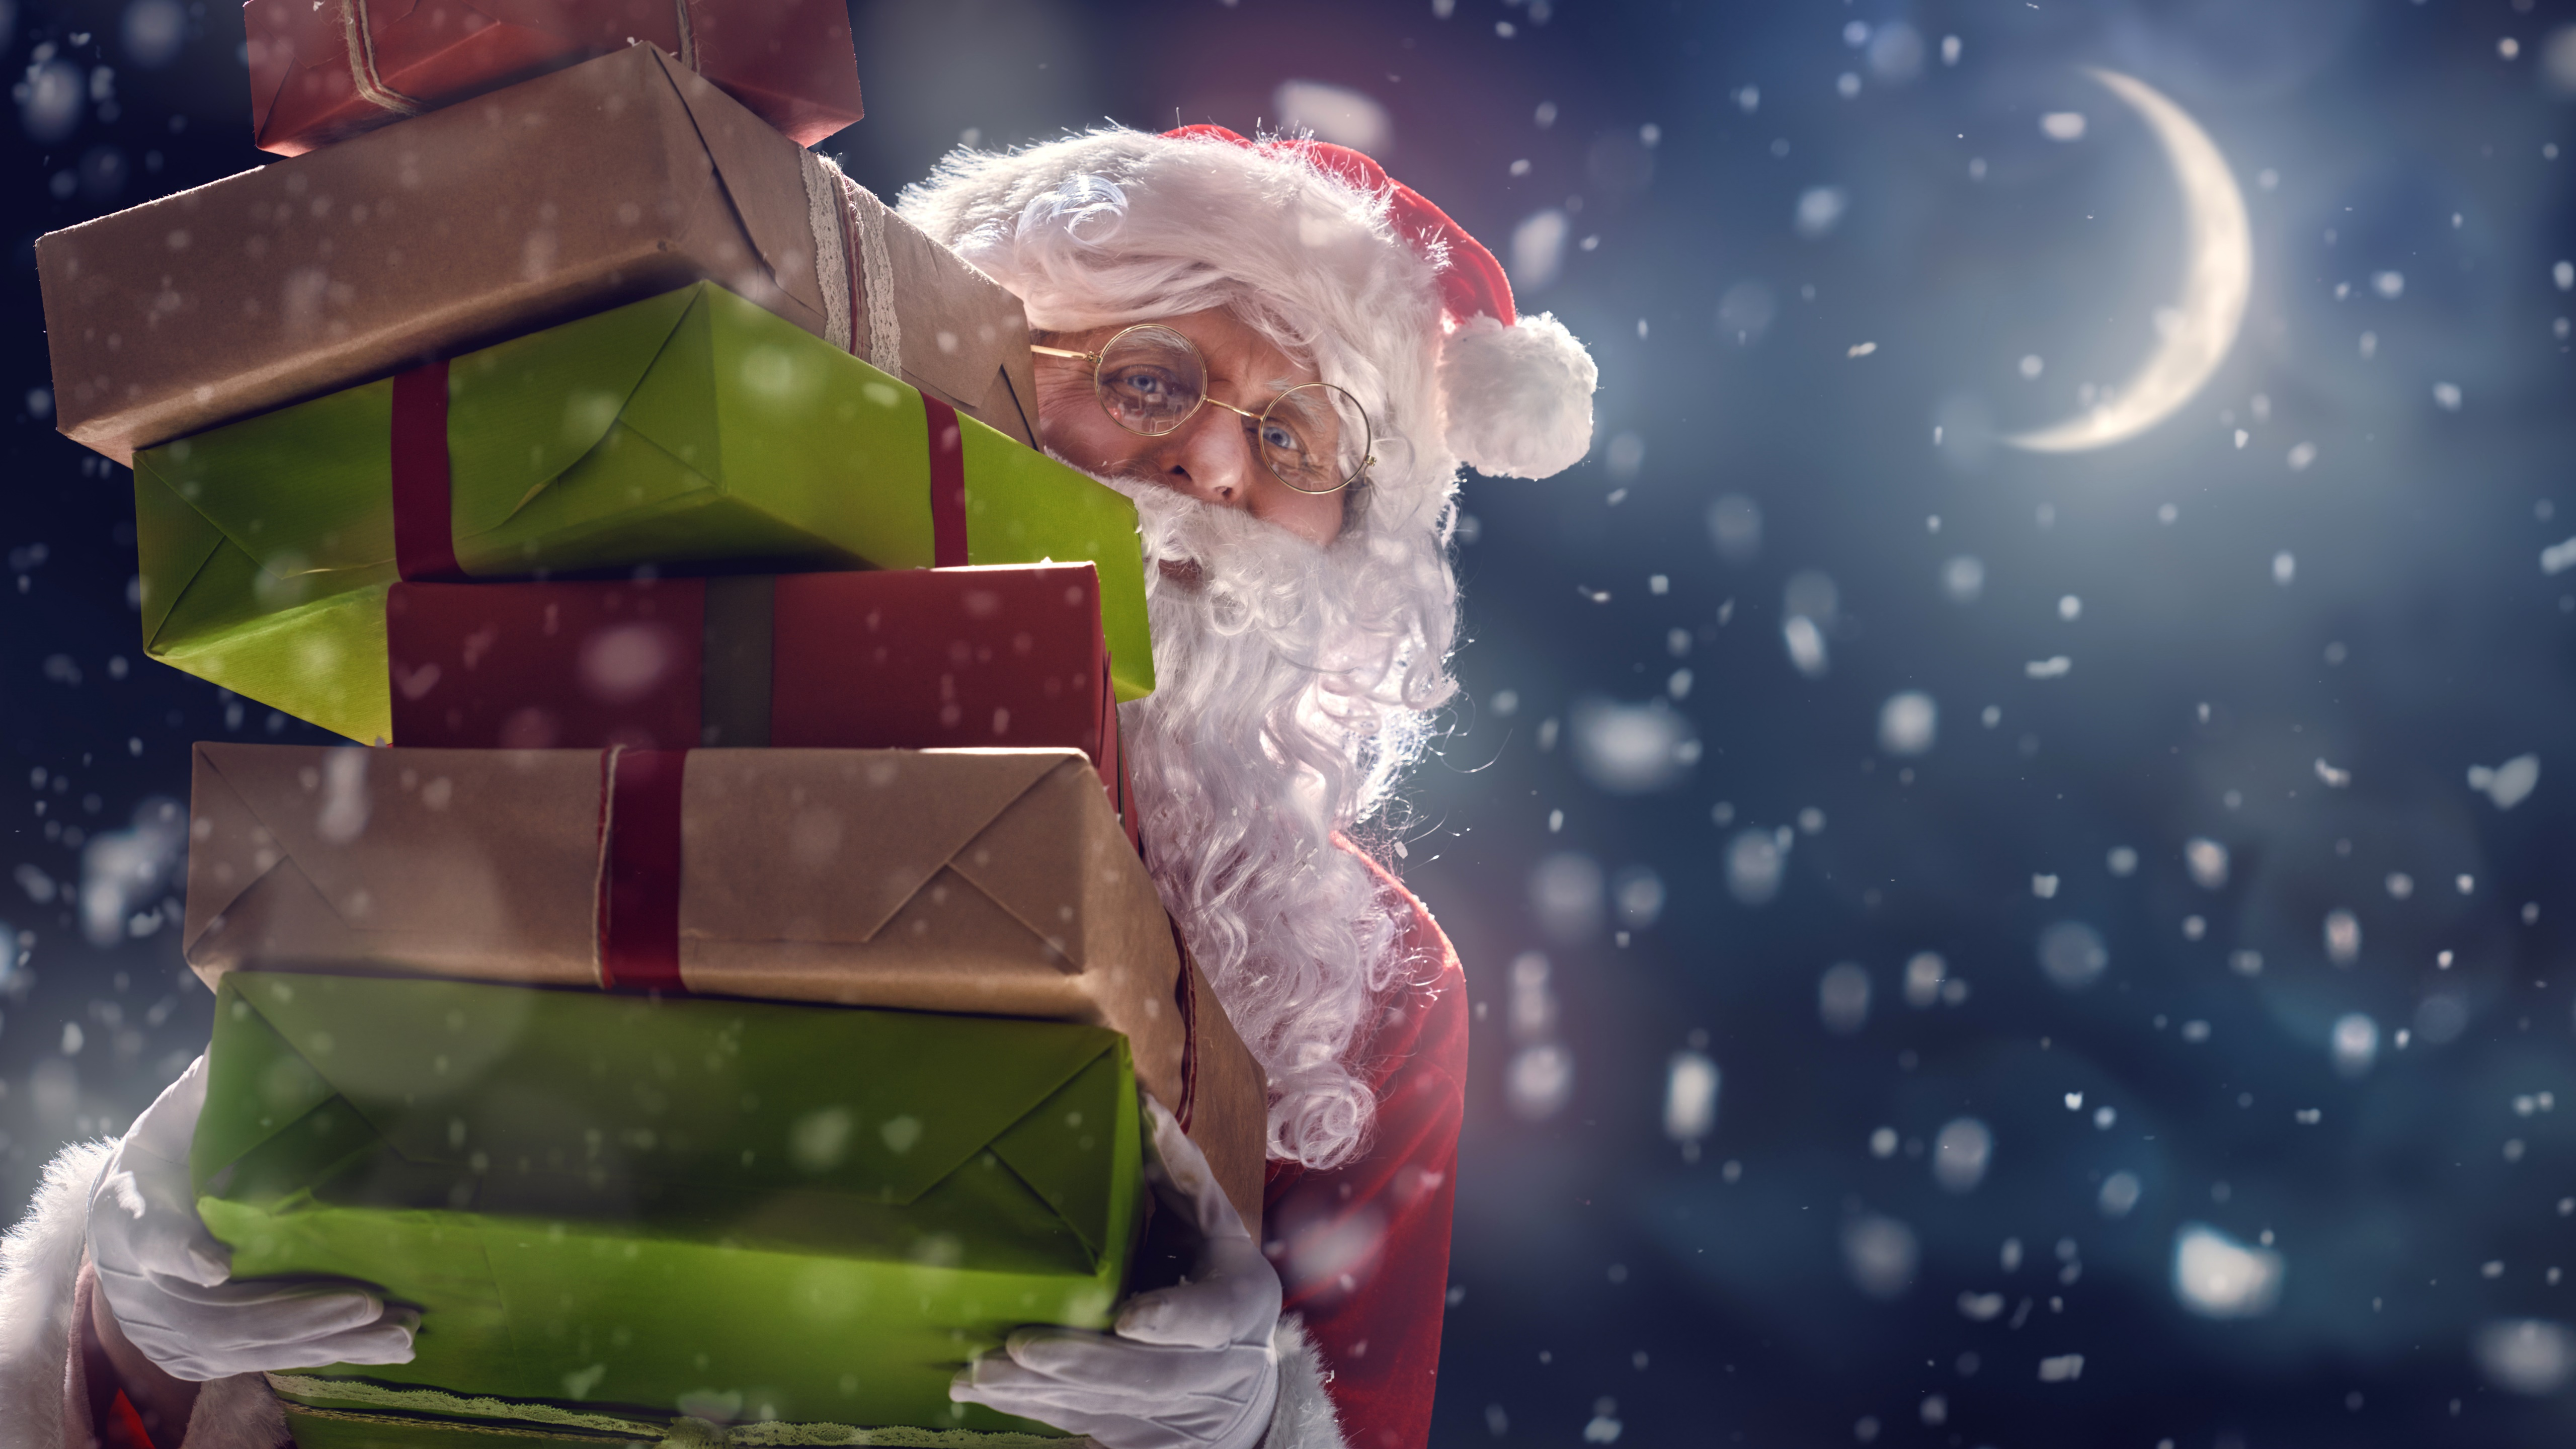 Santa Claus with gifts wallpaper